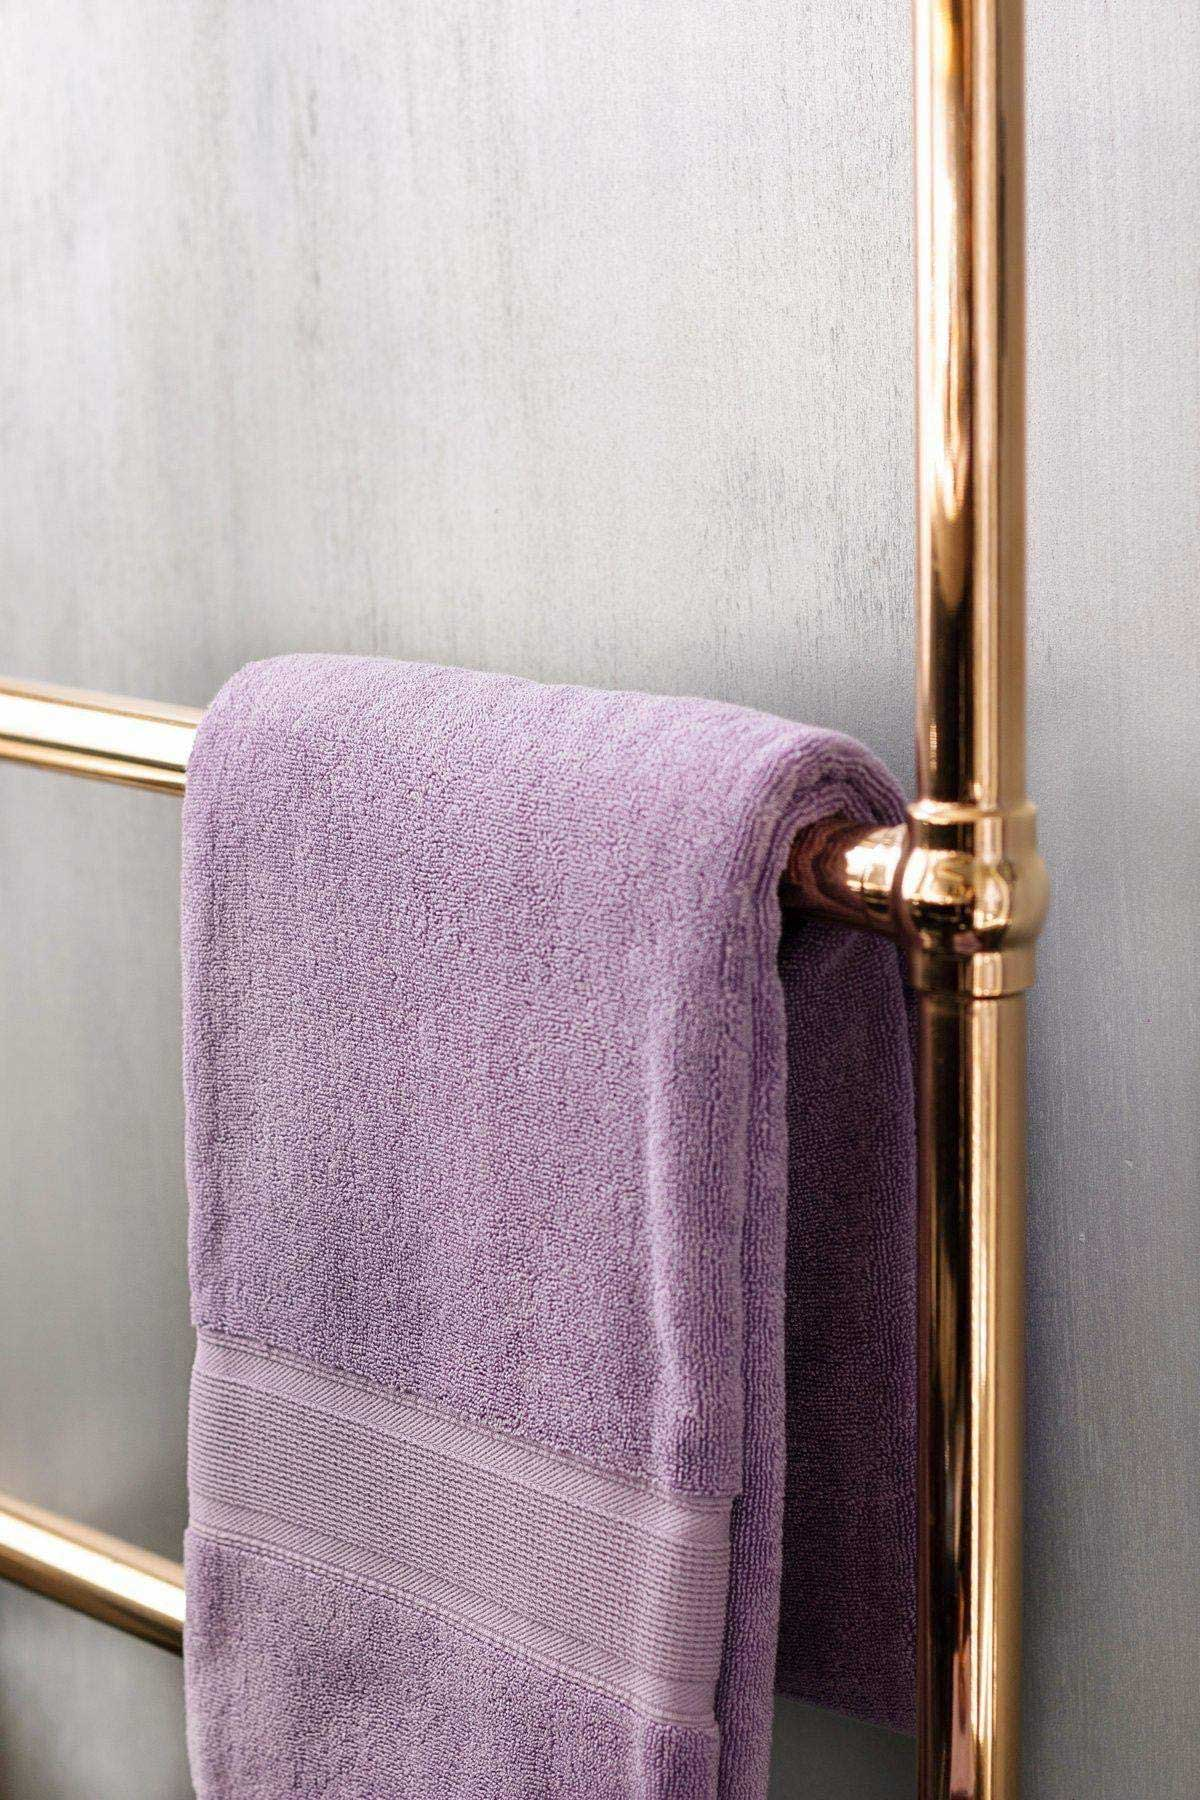 Luzia Premium Turkish Cotton Lavender Towel